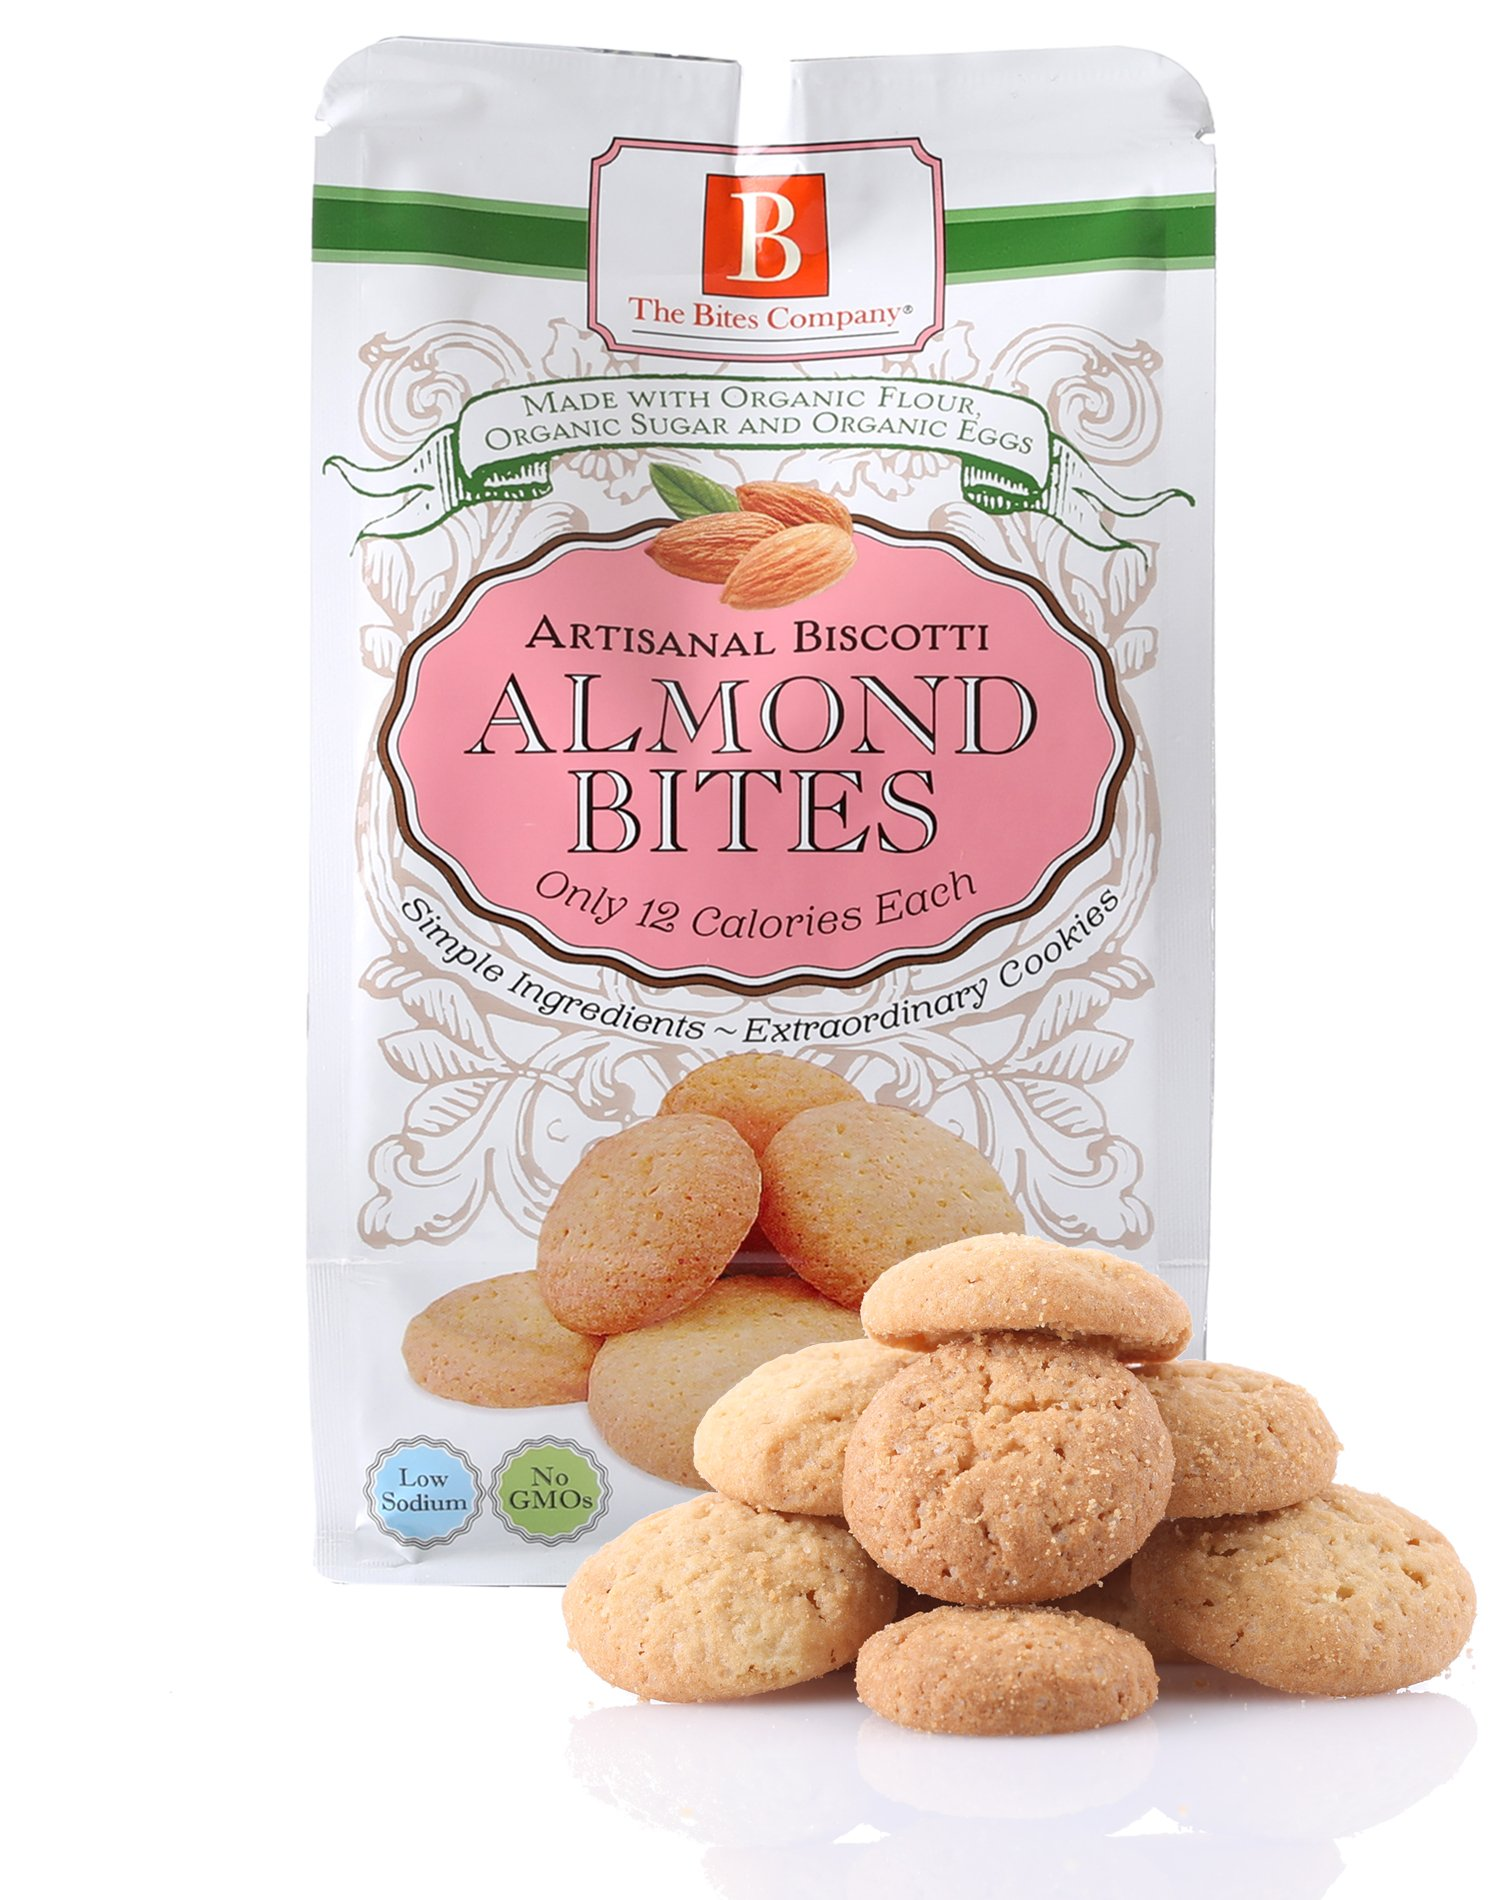 Biscotti Bite Size Cookies by The Bites Company – Certified Organic, NON GMO and Kosher, 4.5 Oz. bag Pack of 3 - Almond